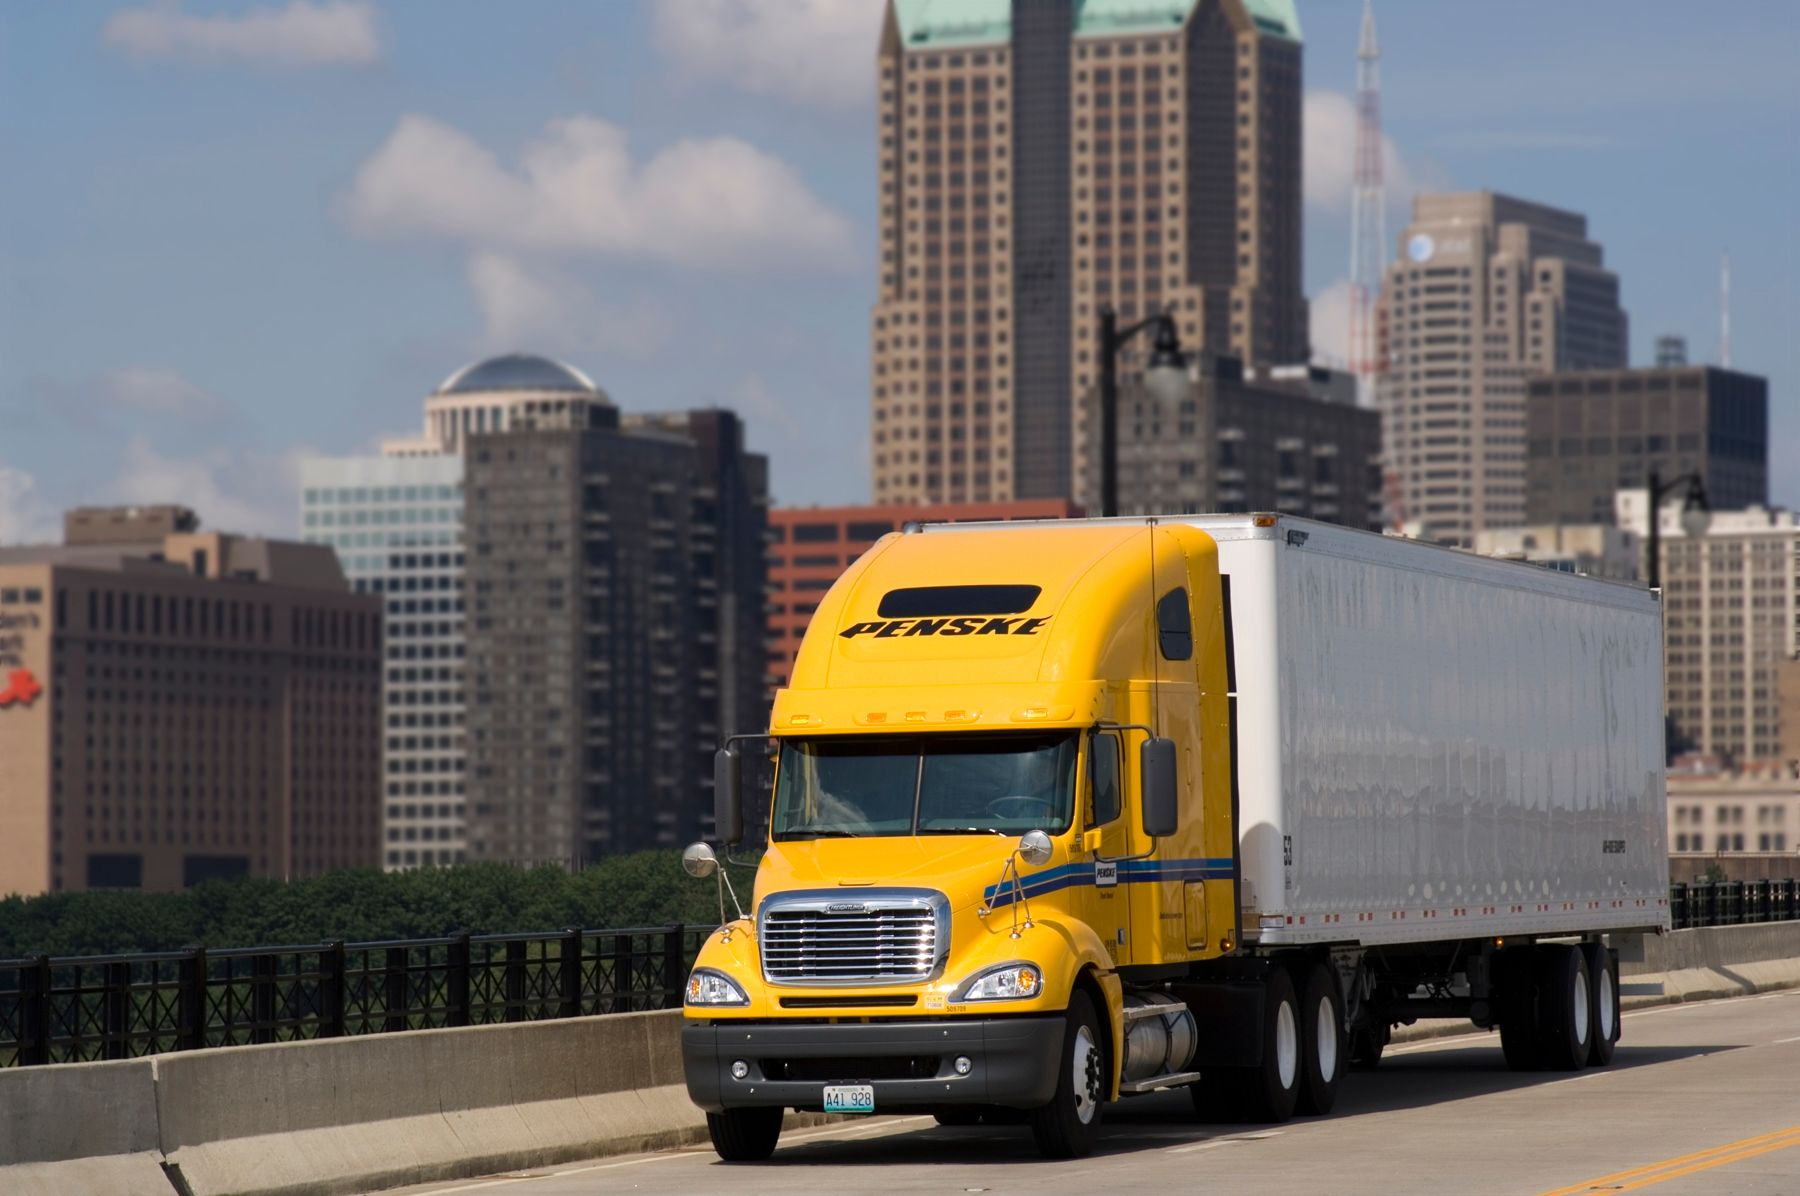 Penske to Exhibit at IFDA Conference/Sponsor IFDA Truck Driving Event